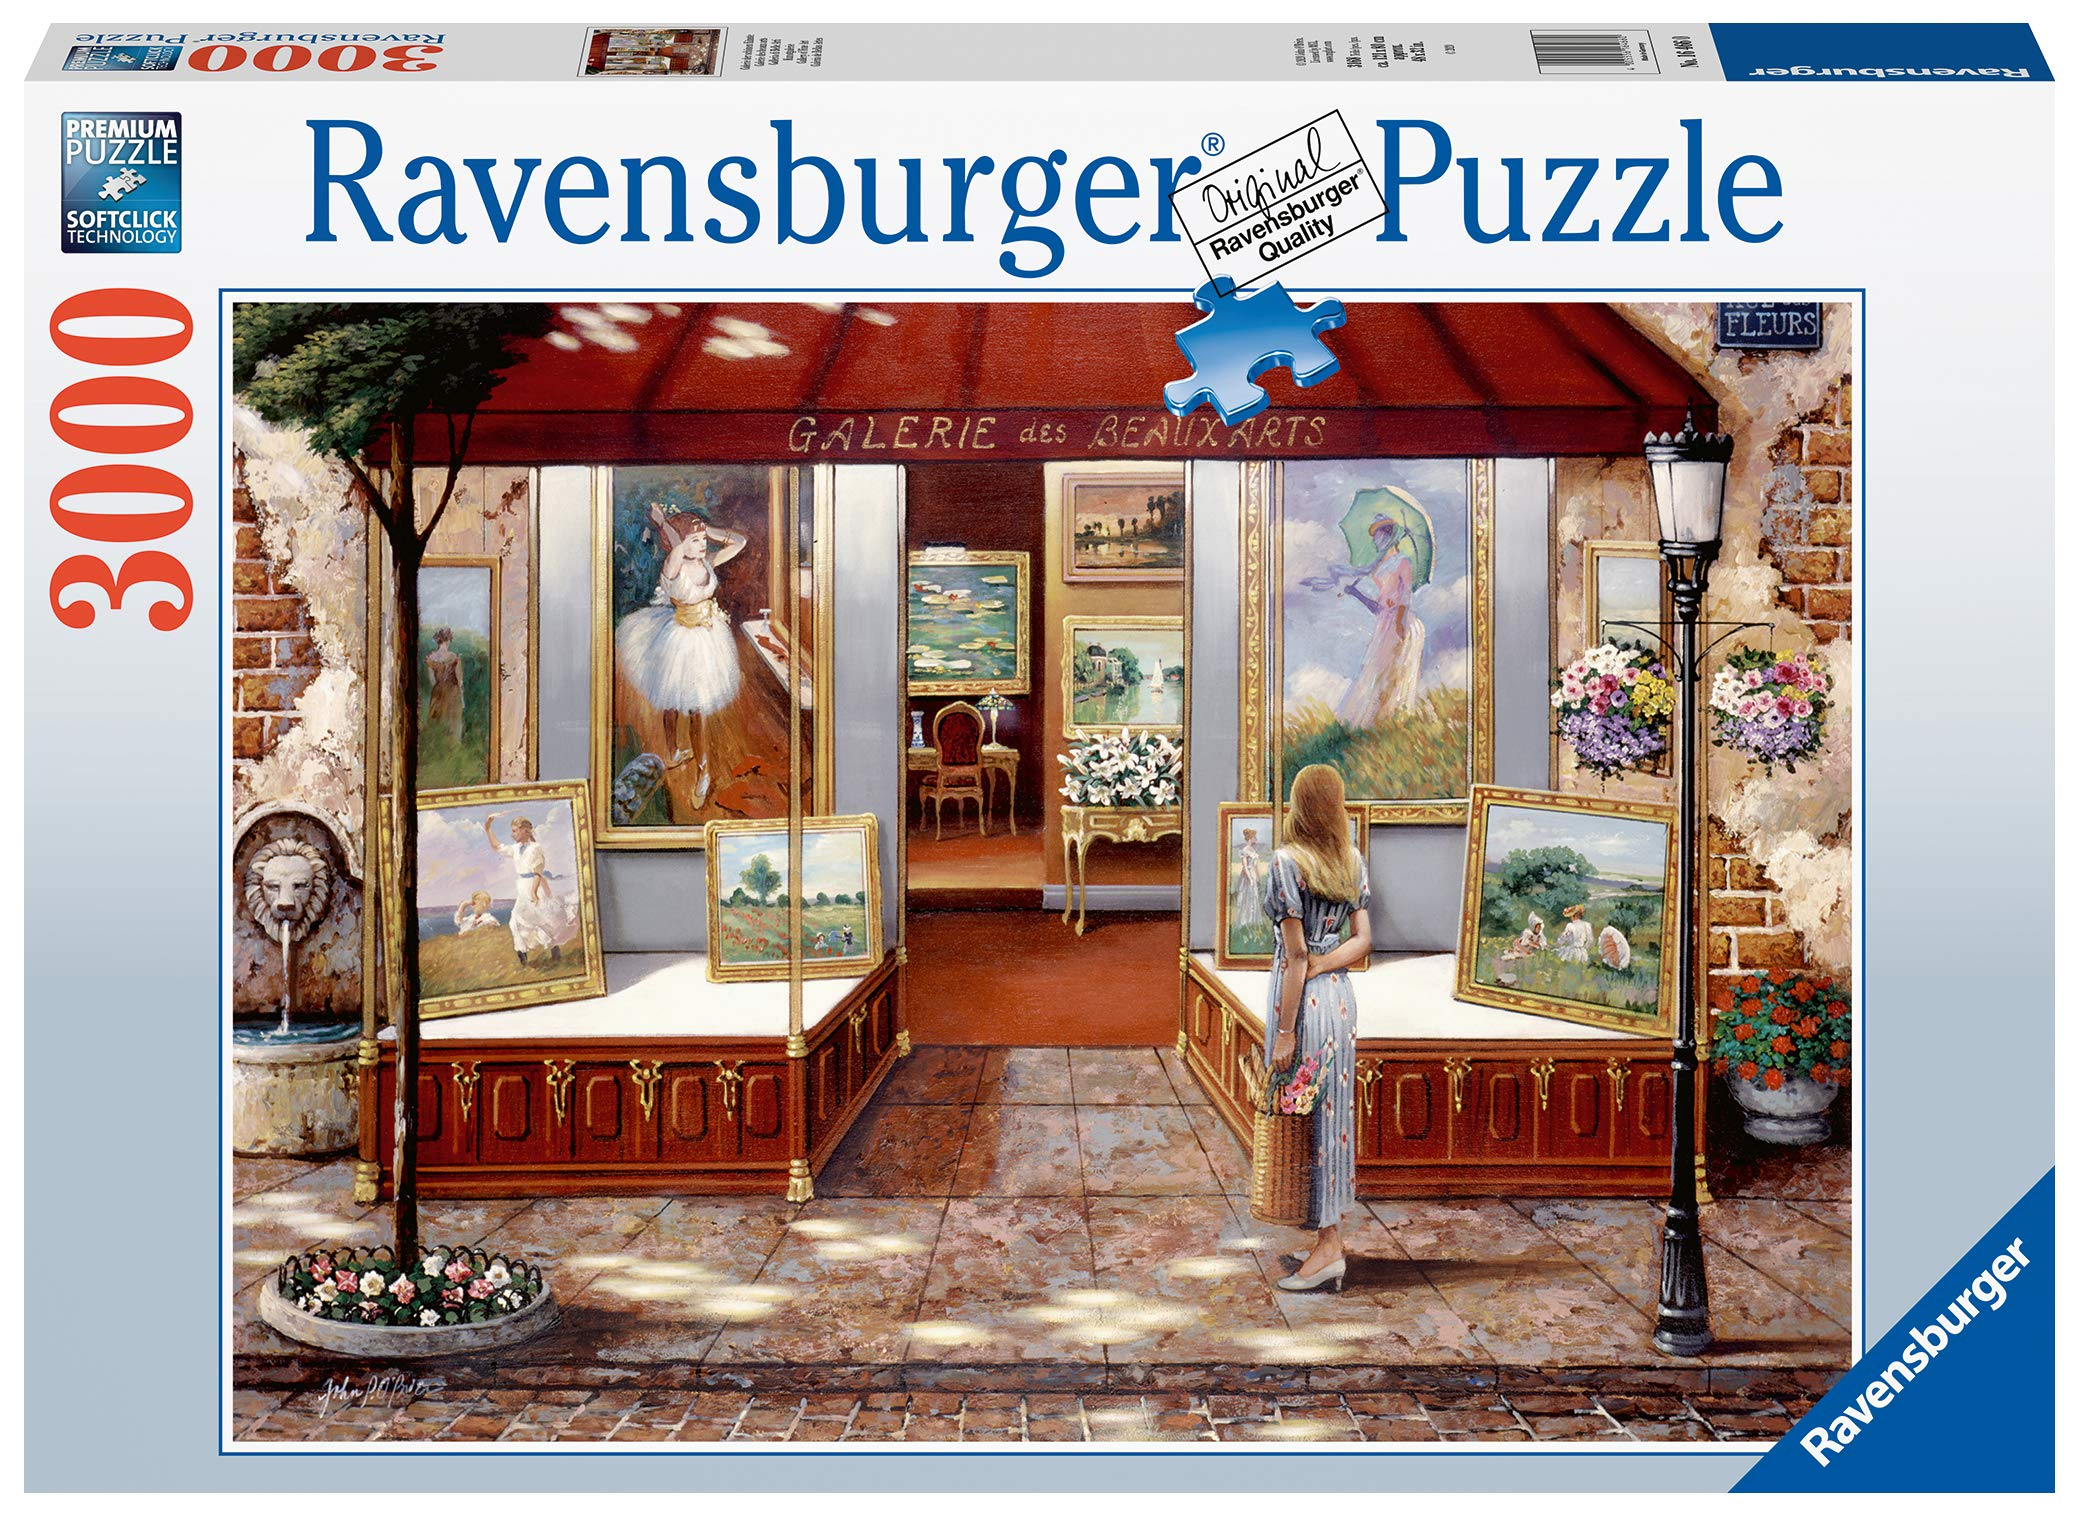 Ravensburger Gallery of Fine Art 3000 Piece Jigsaw Puzzle for Adults & for Kids Age 12 and Up